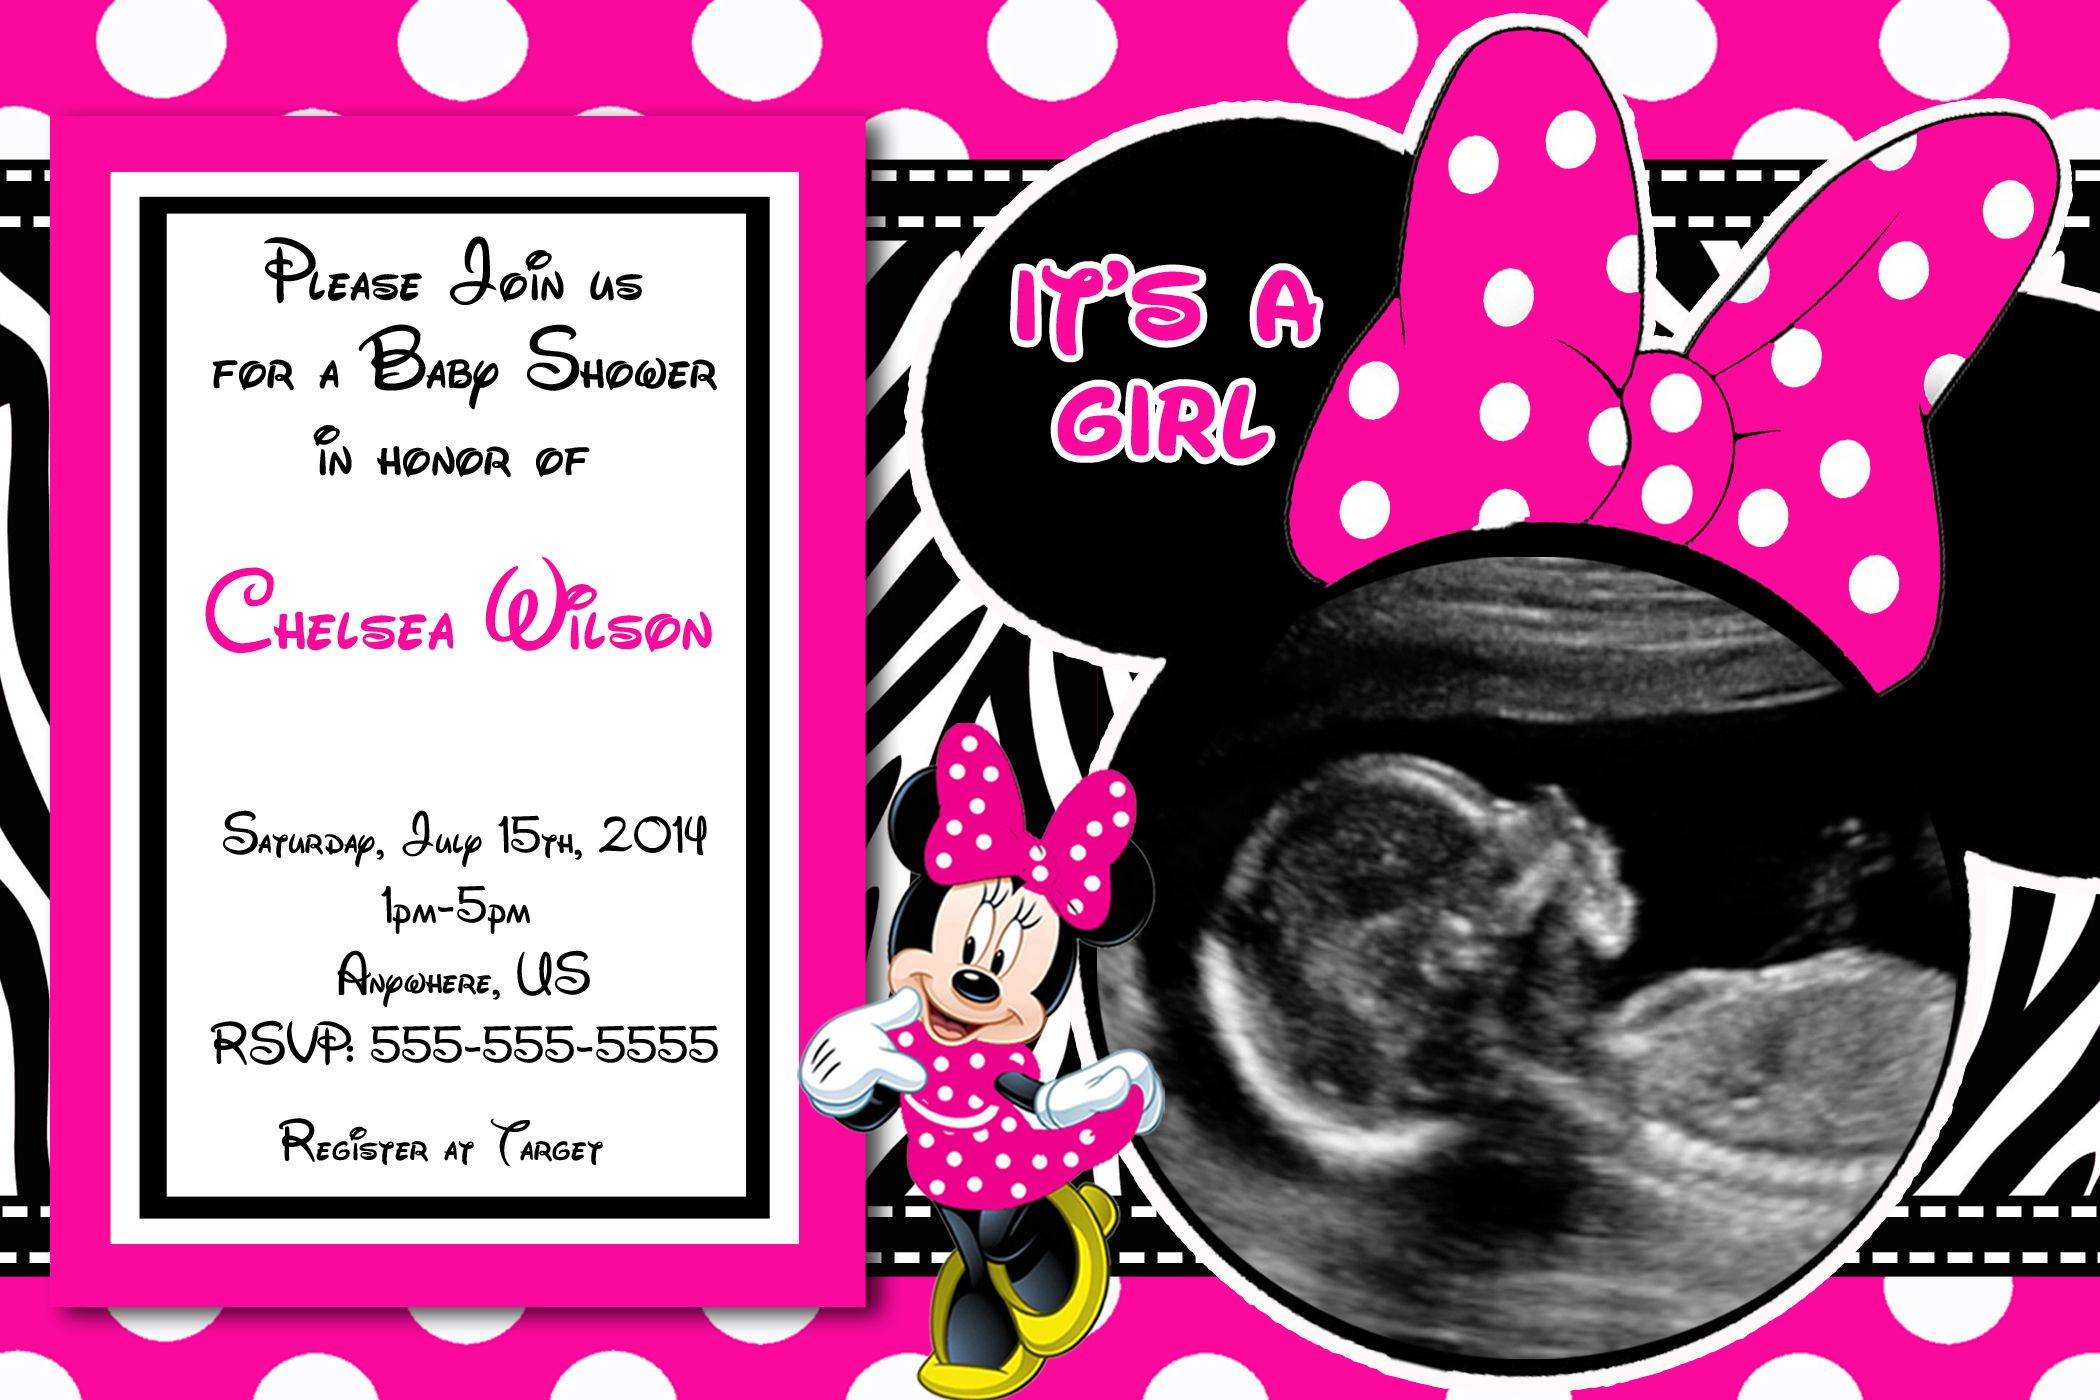 Hot Pink Minnie Mouse Baby Shower Invitations $8.99 | Baby Shower - Free Printable Minnie Mouse Baby Shower Invitations